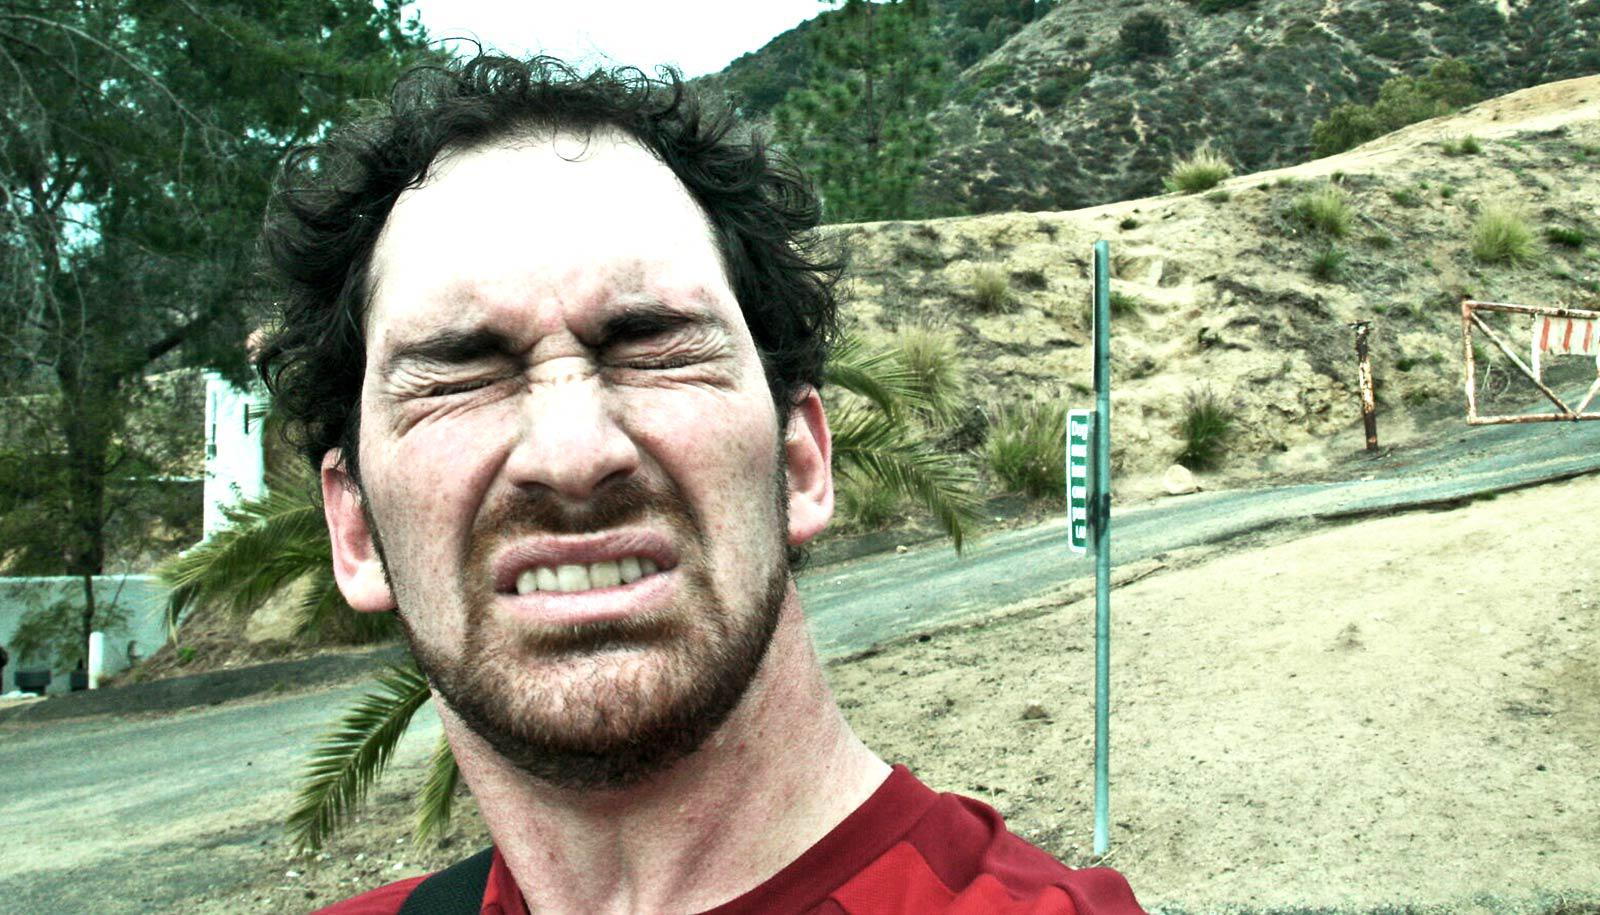 A man grimaces while sneezing outside on a walking trail